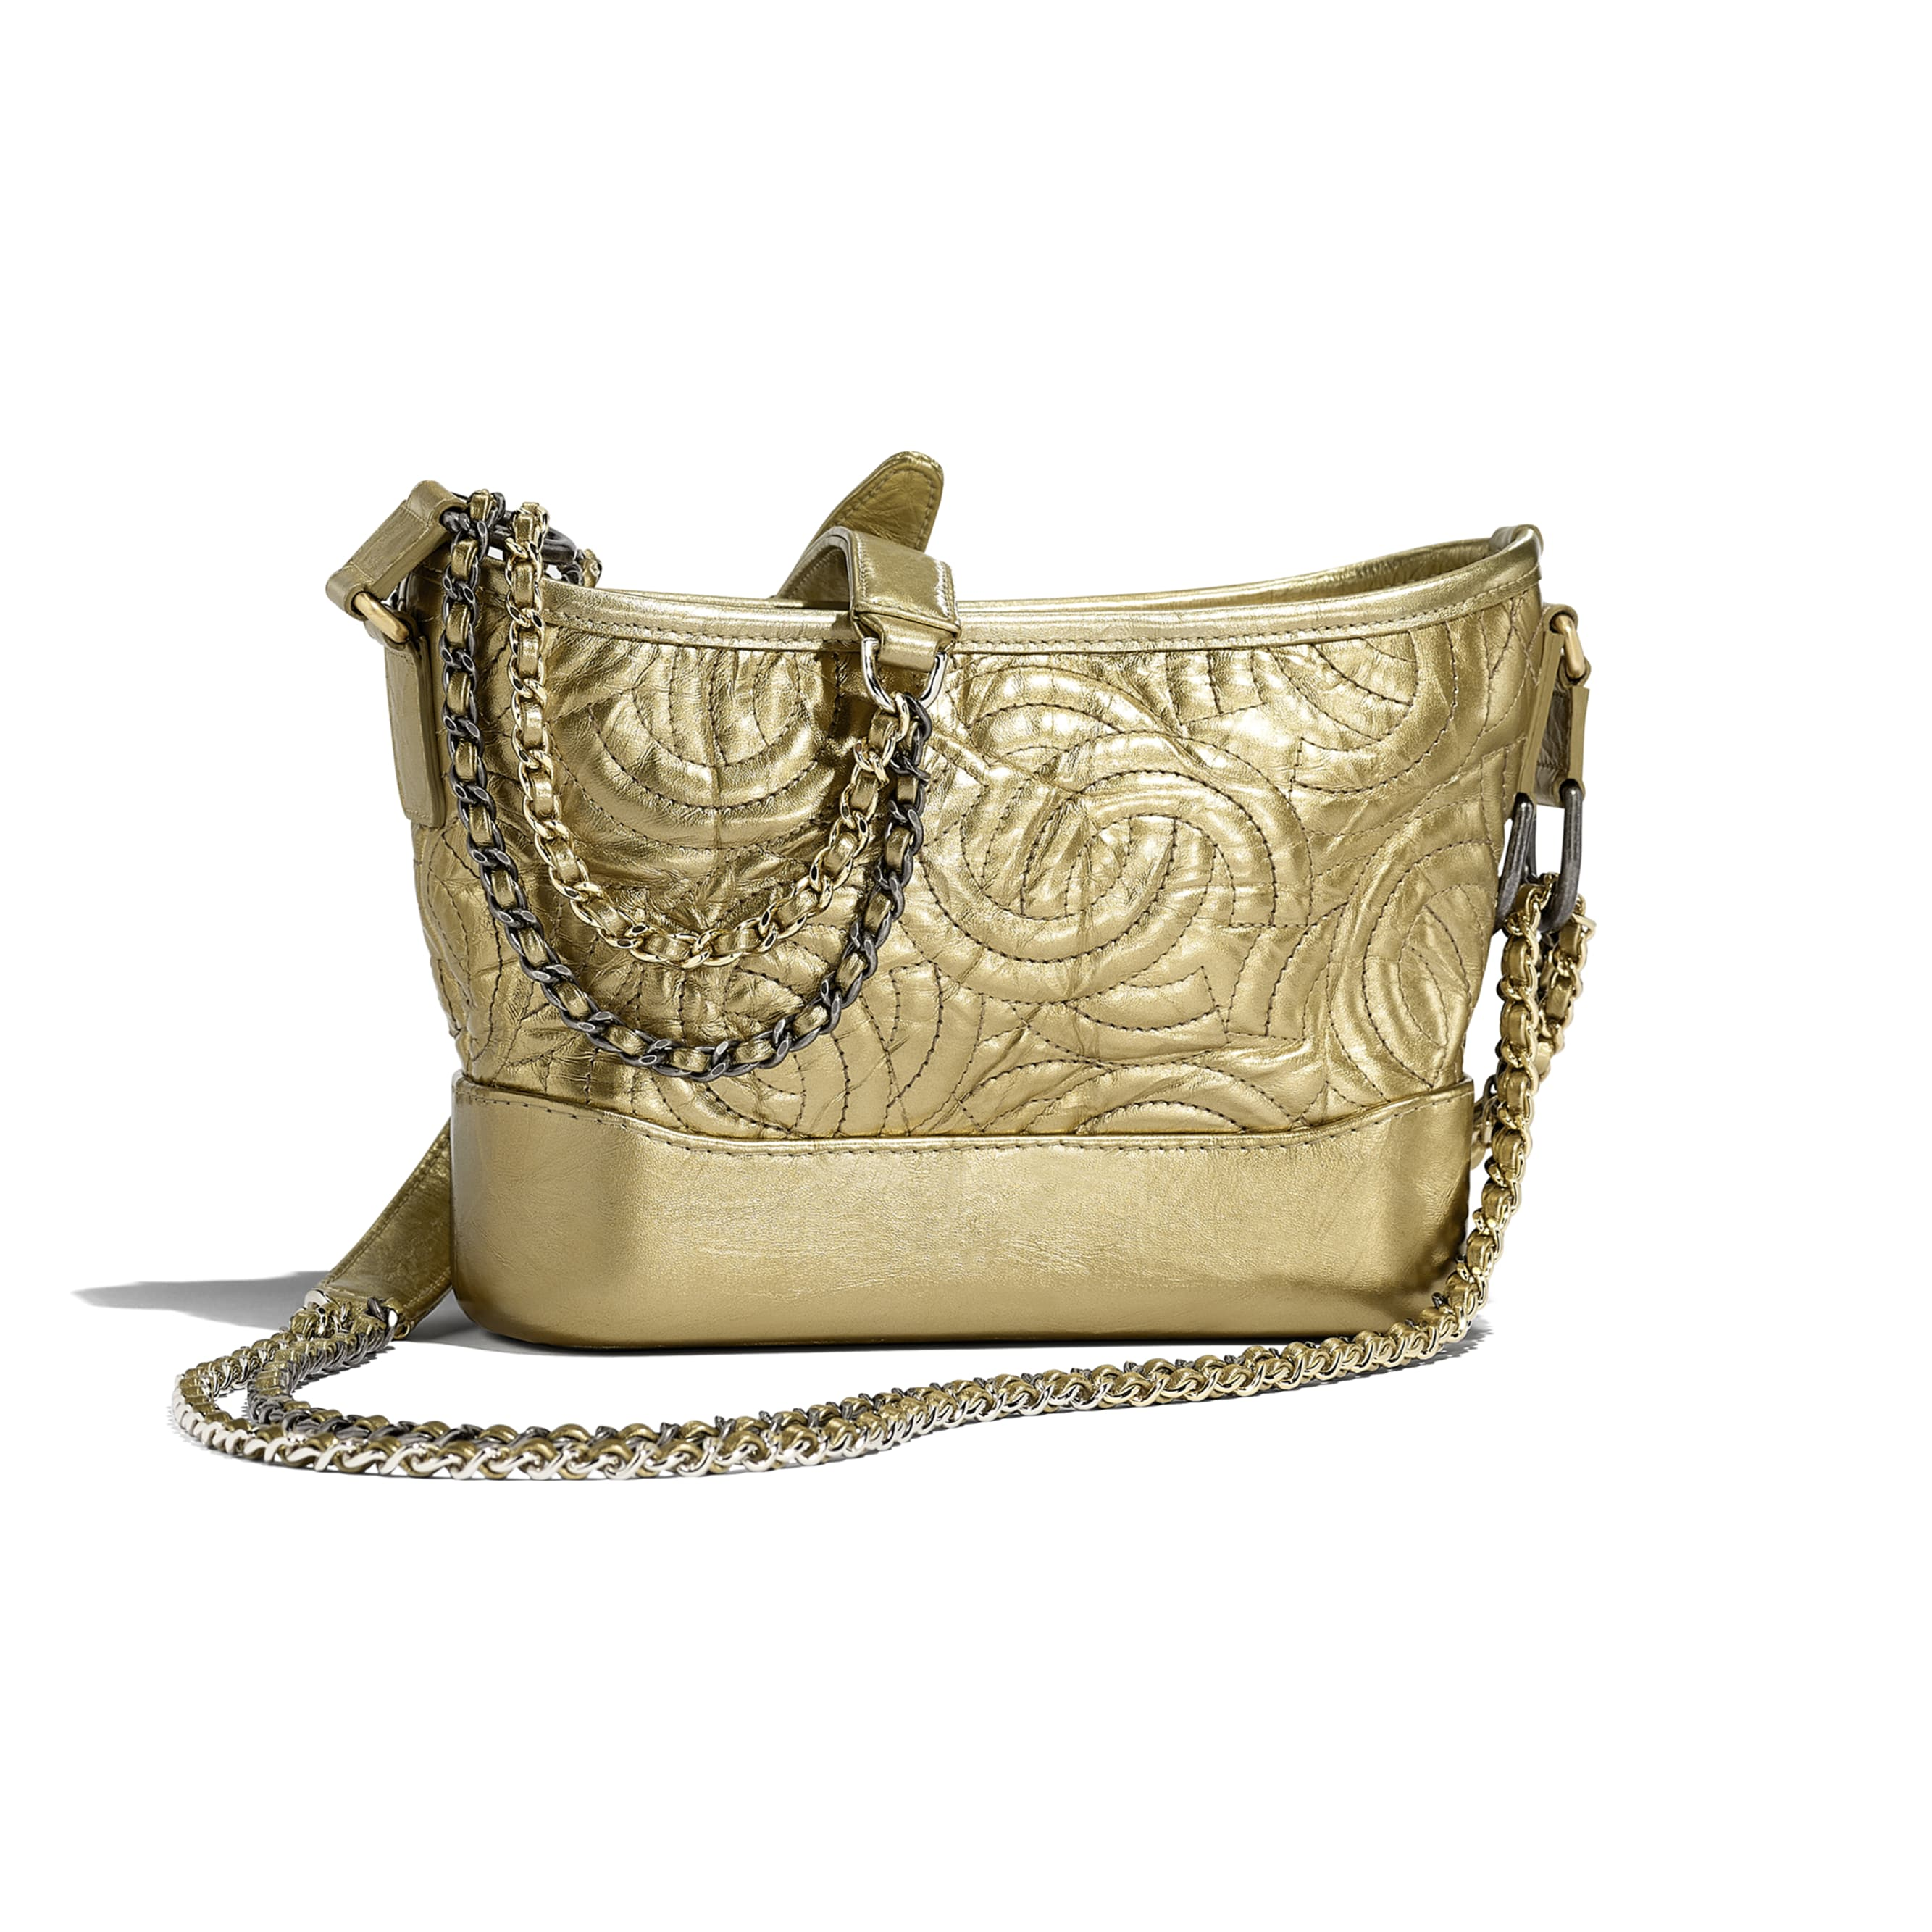 CHANEL'S GABRIELLE Small Hobo Bag - Gold - Calfskin, Silver-Tone & Gold-Tone Metal - CHANEL - Alternative view - see standard sized version